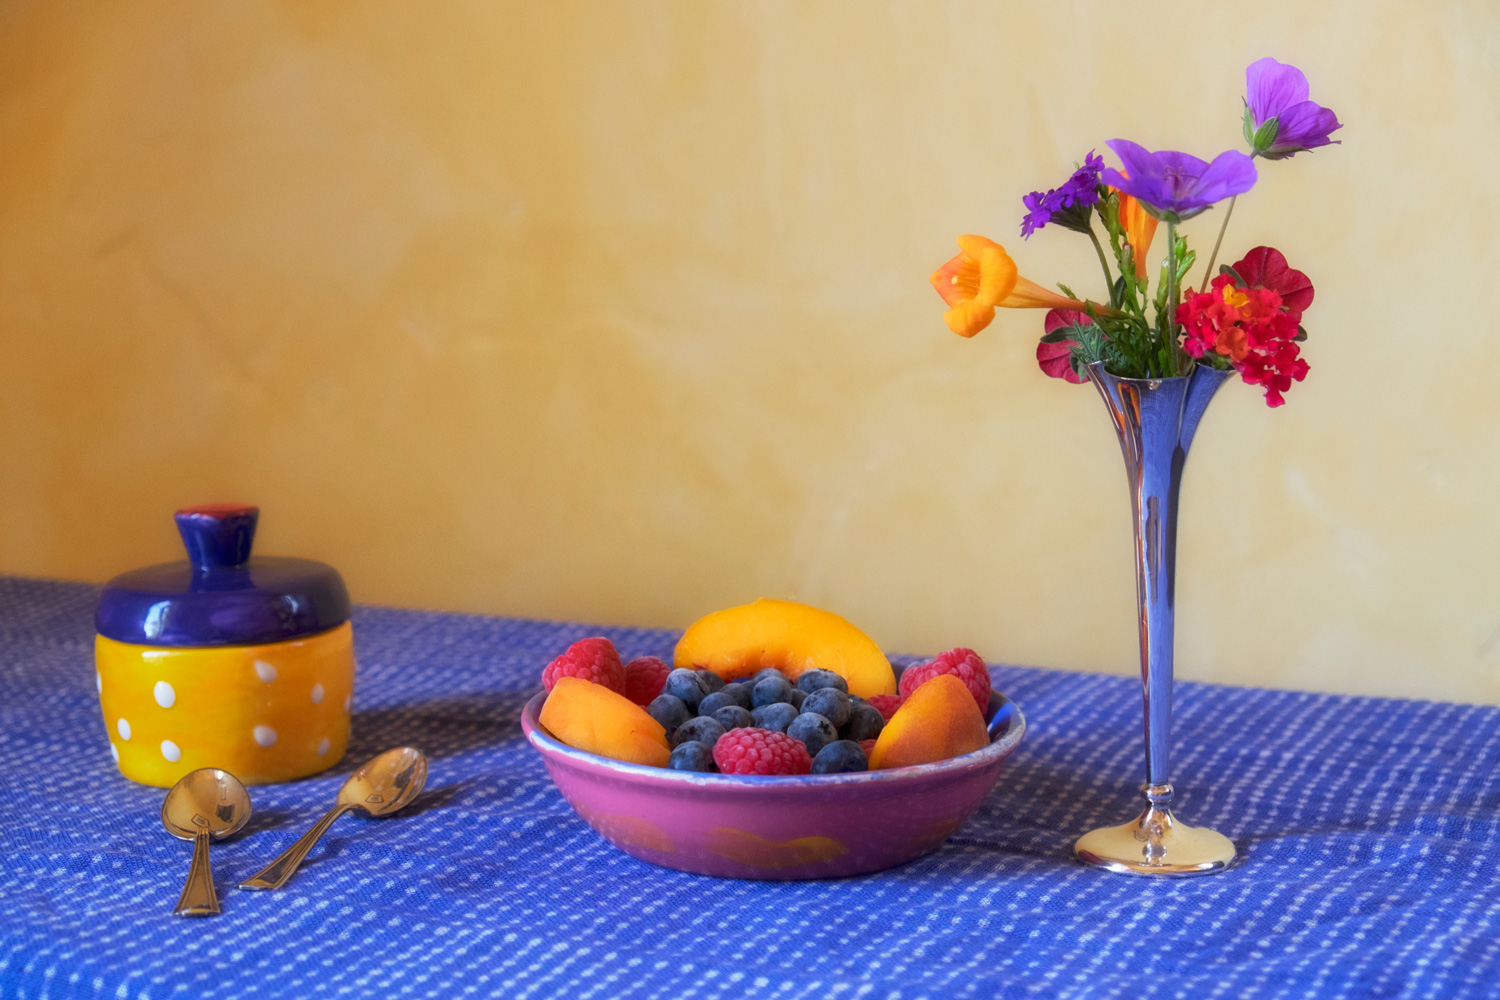 Colorful Fruit and flowers on a table